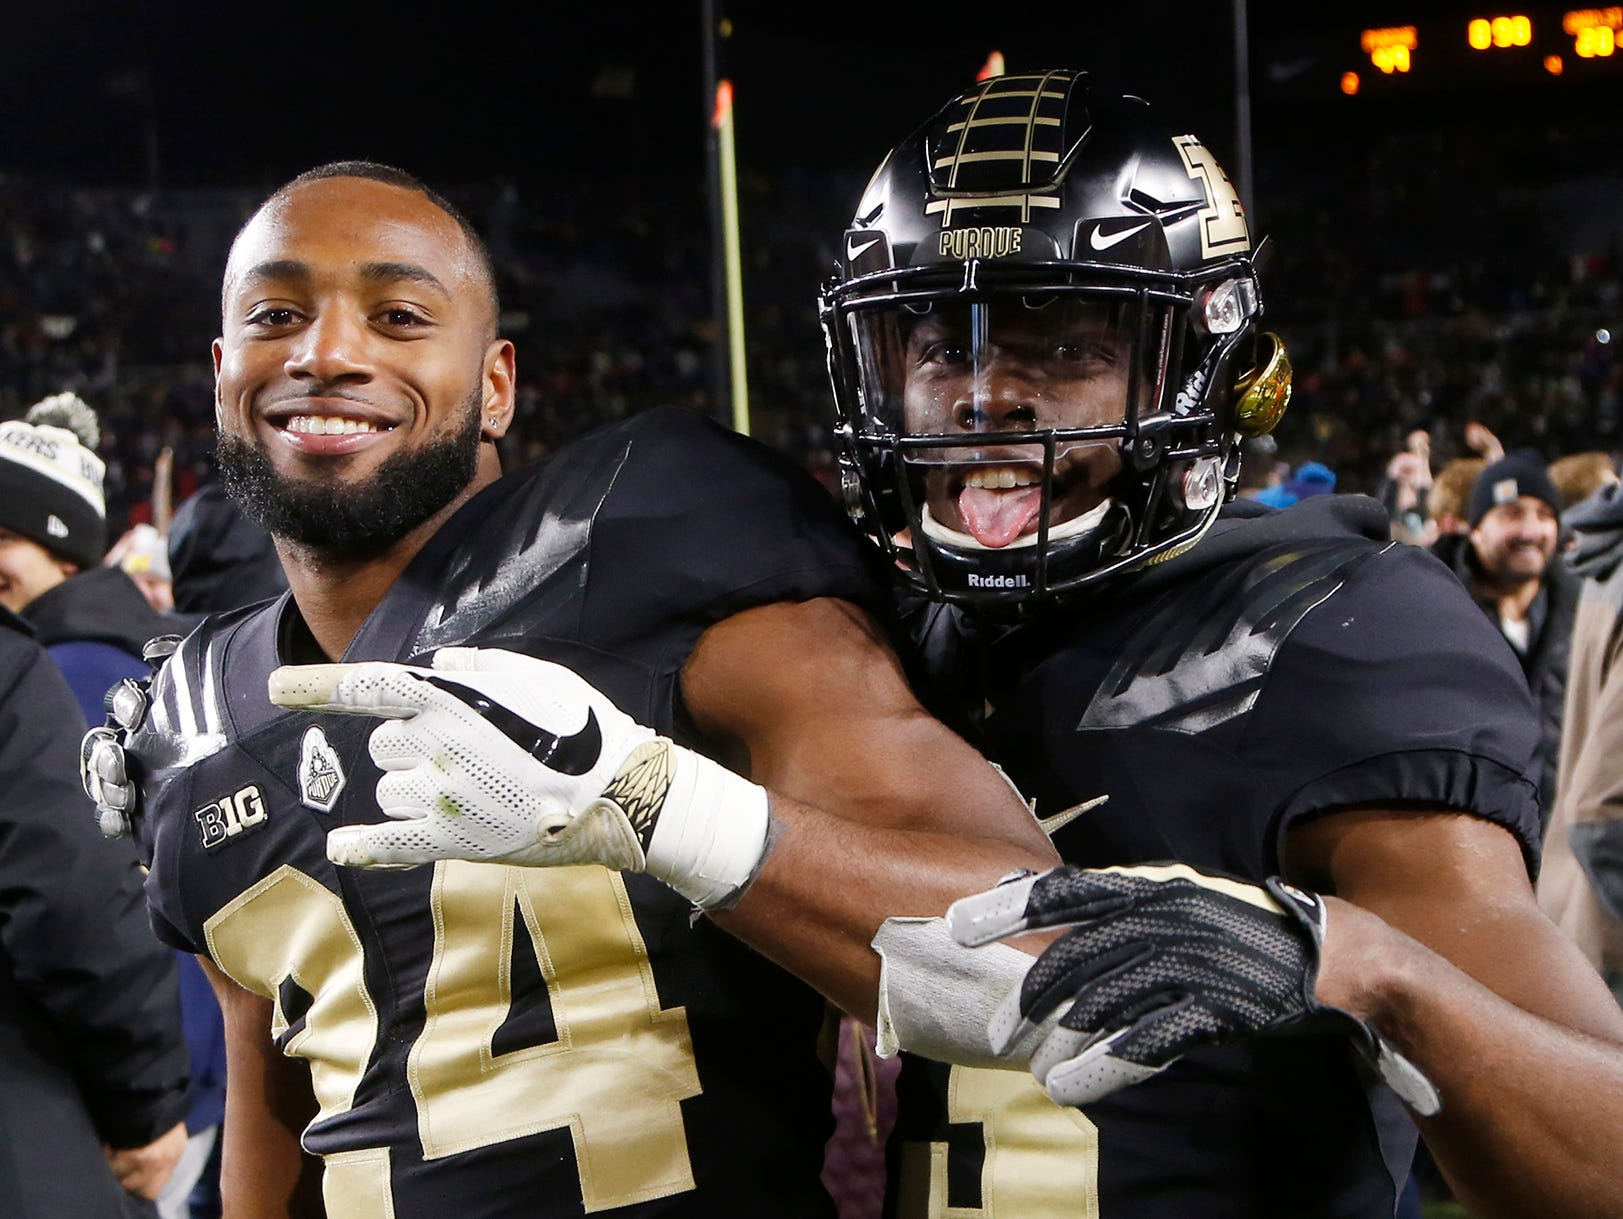 Tim Cason, left, and Kamal Hardy of Purdue join the celebration on the field after the Boilermakers upset No. 2 ranked Ohio State 49-20 Saturday, October 20, 2018, at Ross-Ade Stadium.